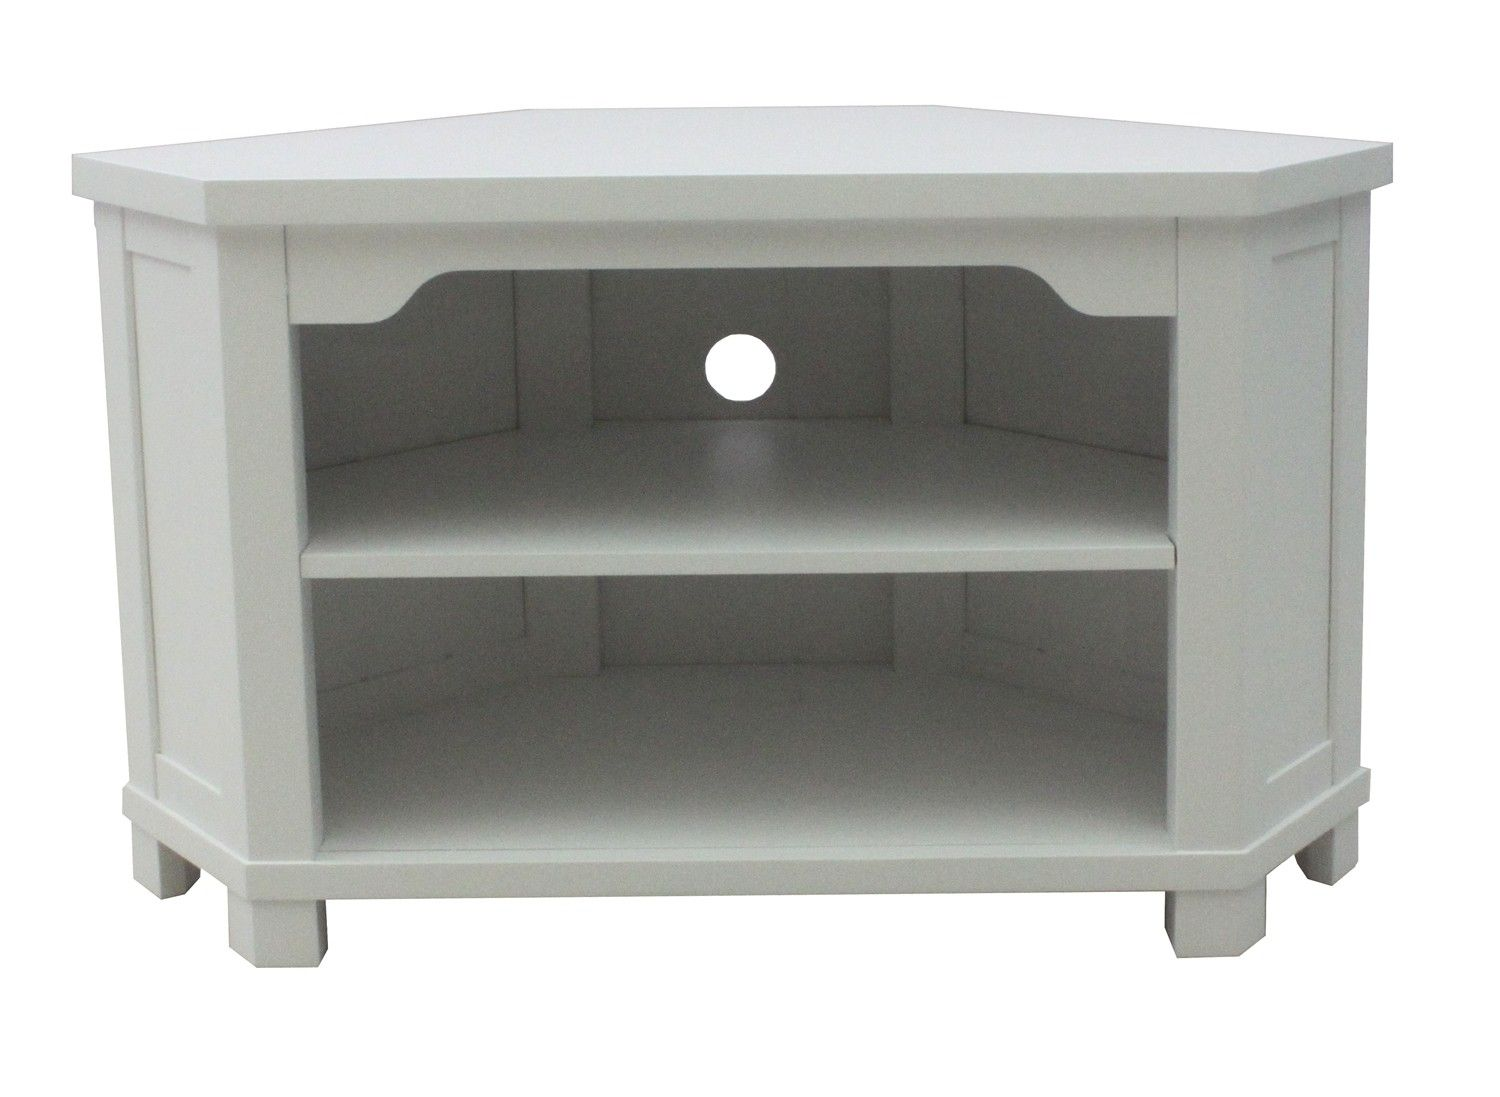 White Corner Cabinet Living Room Our Vermont Corner Television Cabinet Fits Into The Smallest